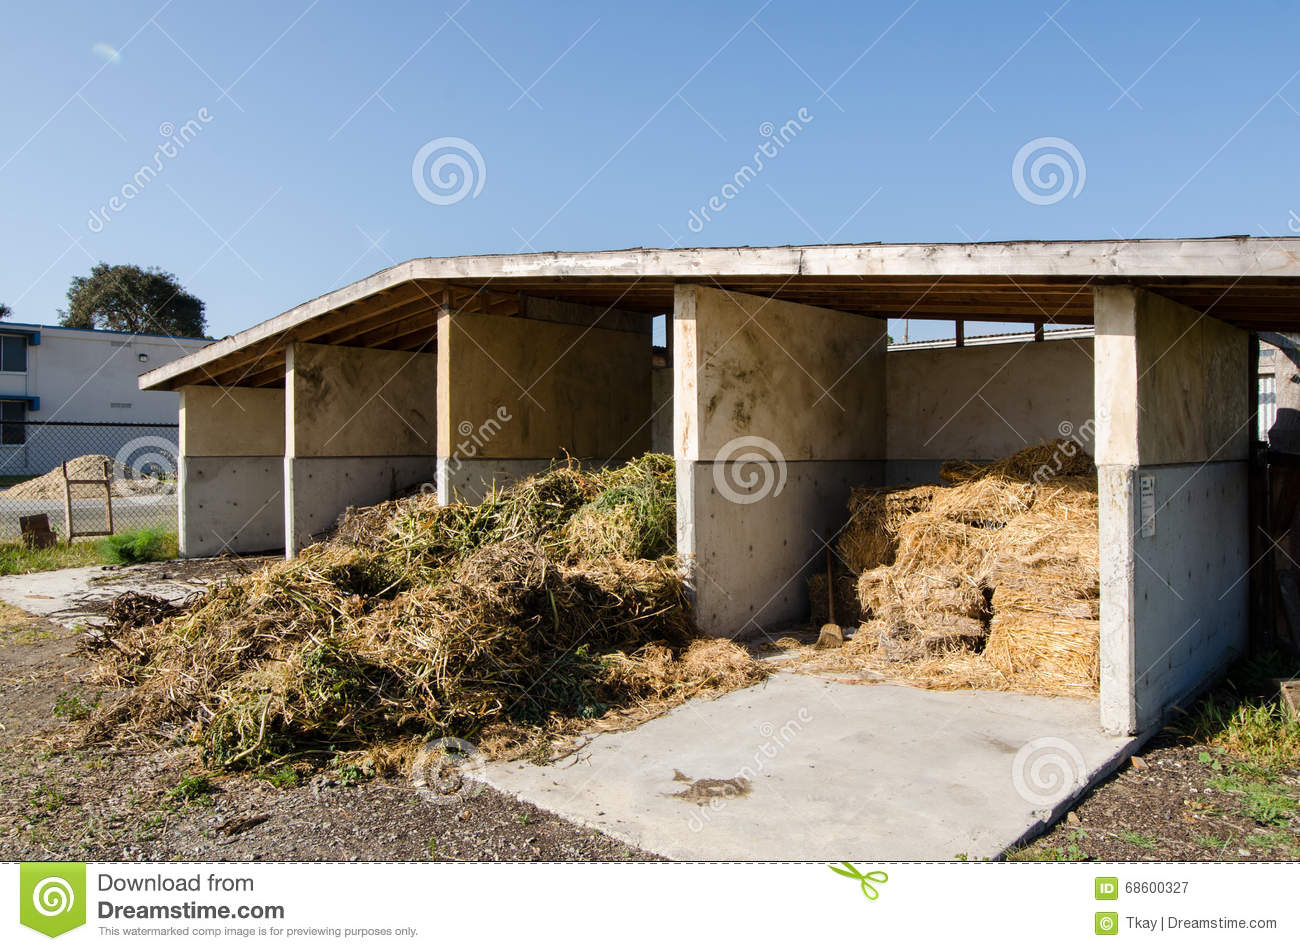 Download comp & Hay storage shed stock image. Image of shed storage - 68600327